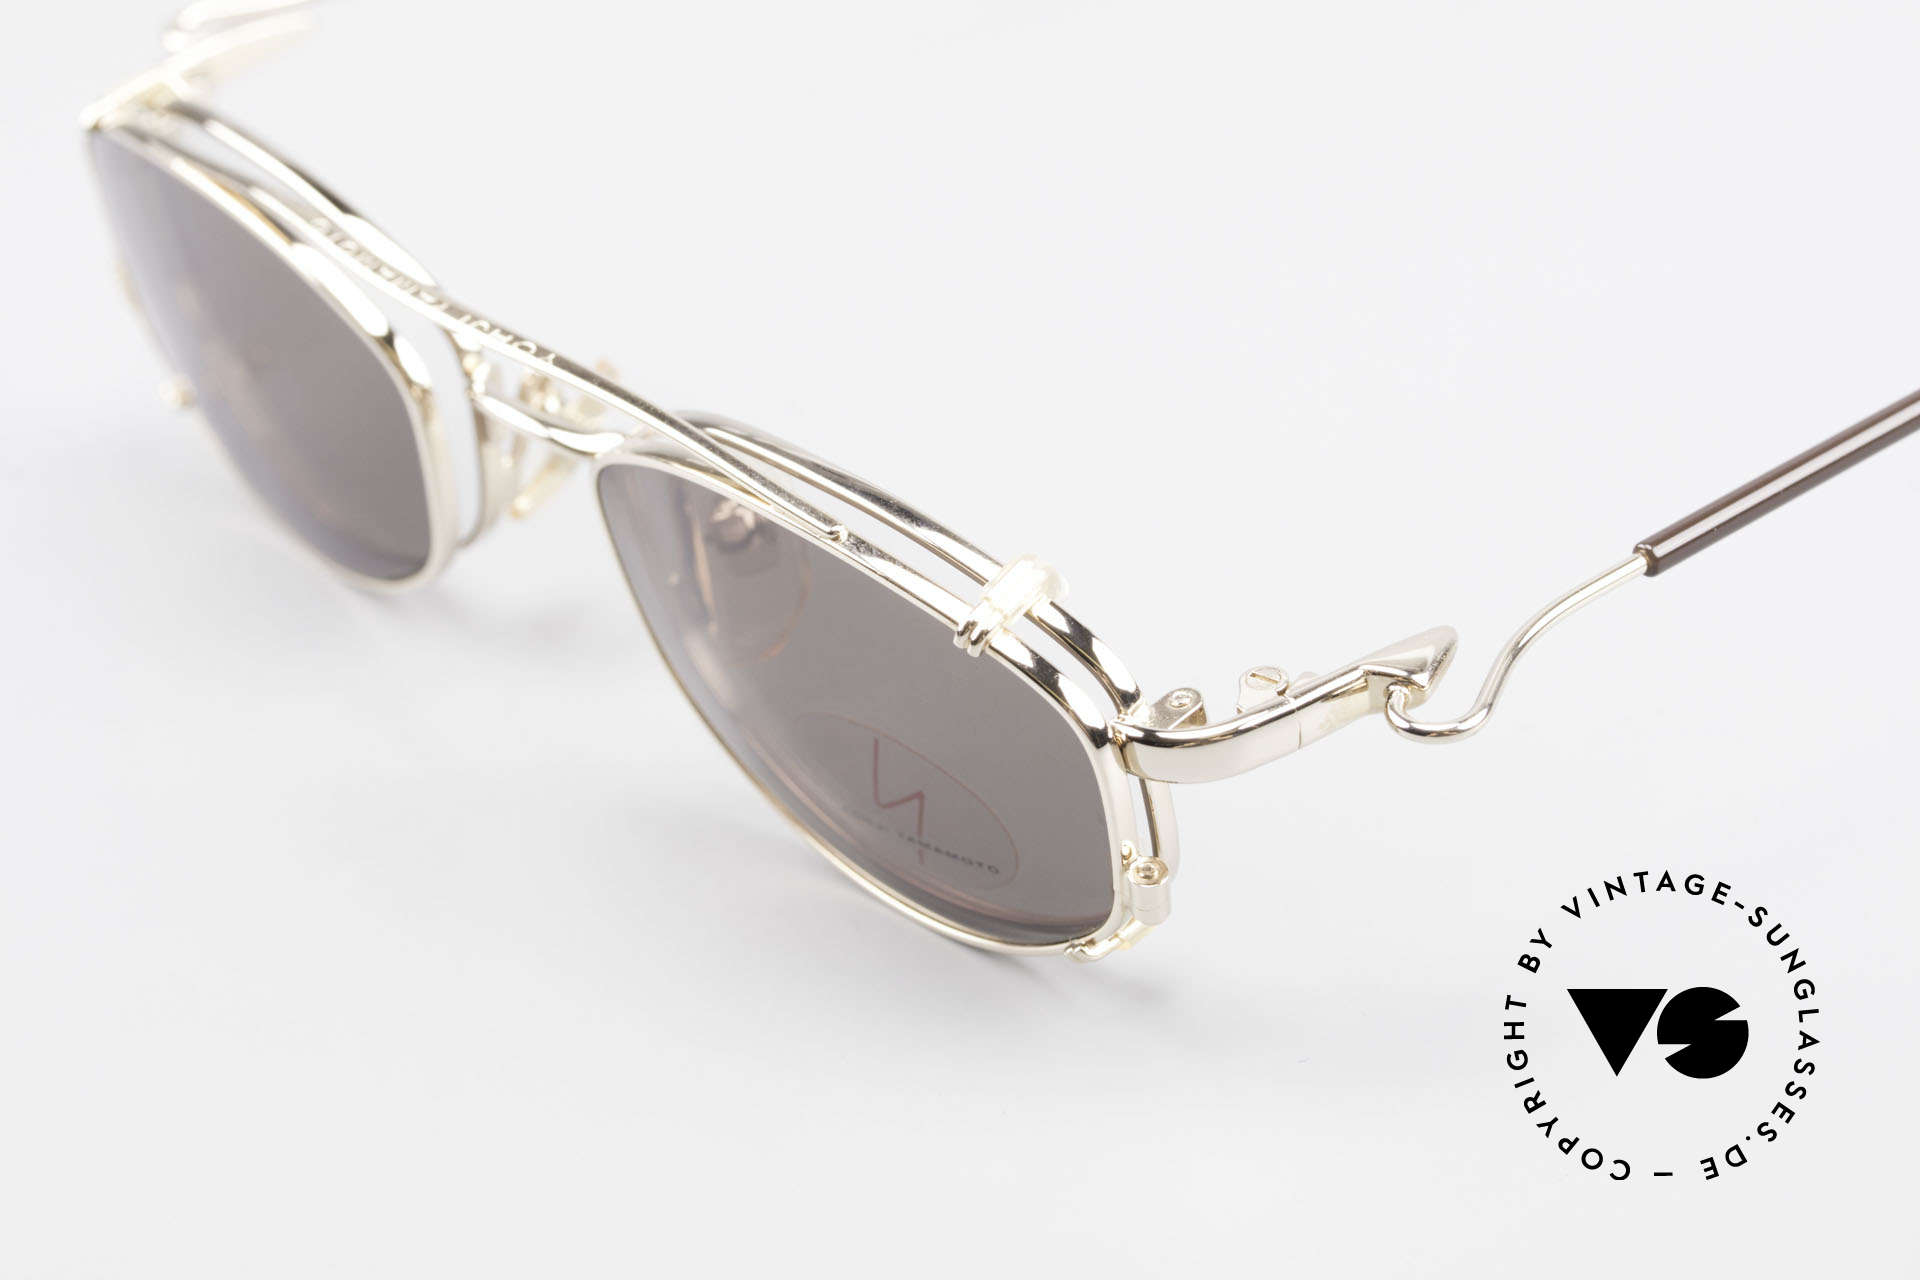 Yohji Yamamoto 51-7211 Gold Plated Frame With Clip On, demo lenses can be replaced optionally, + SUN CLIP, Made for Men and Women